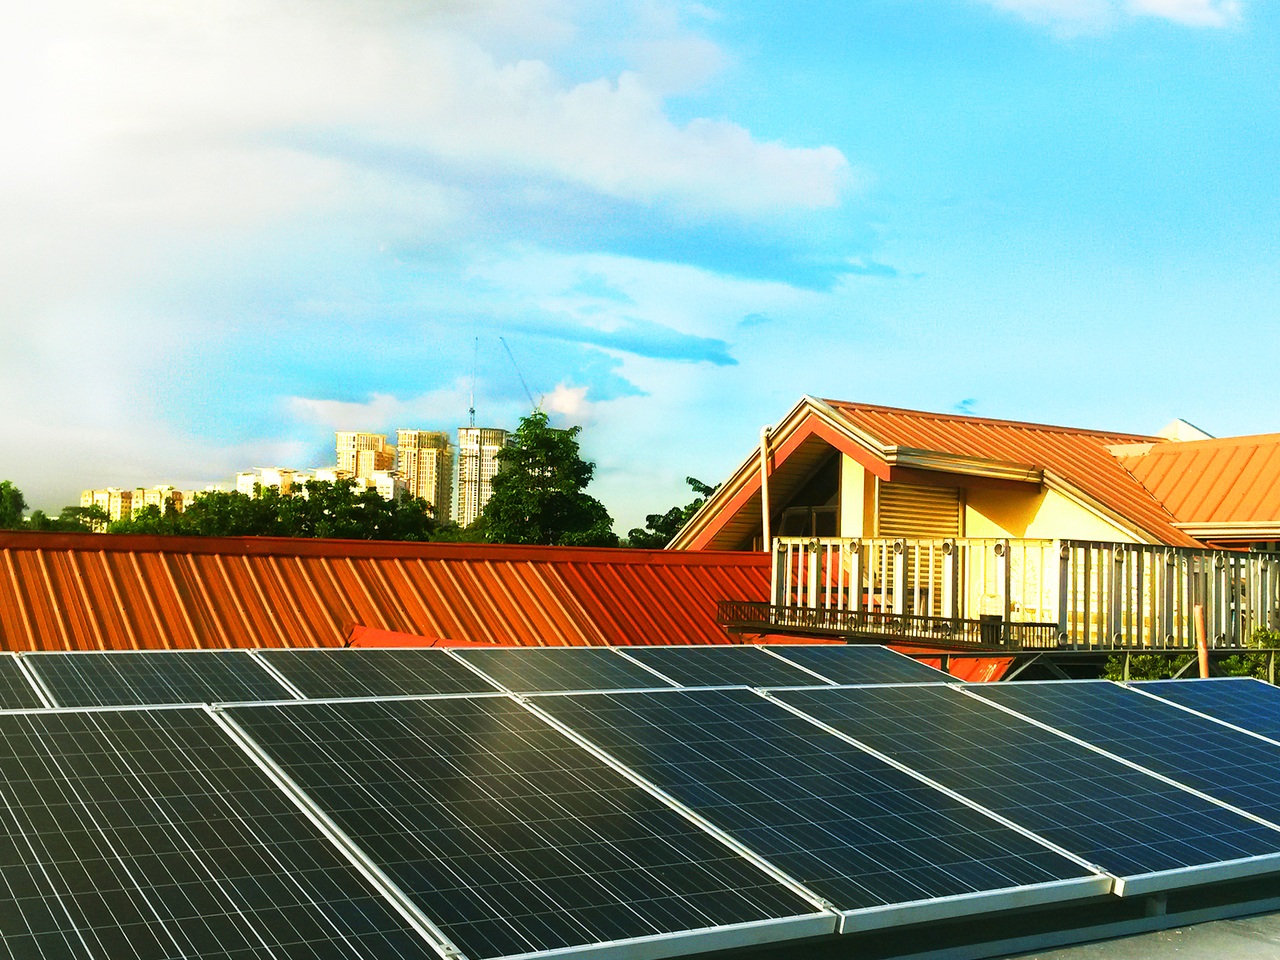 Close up of a home's rooftop with solar